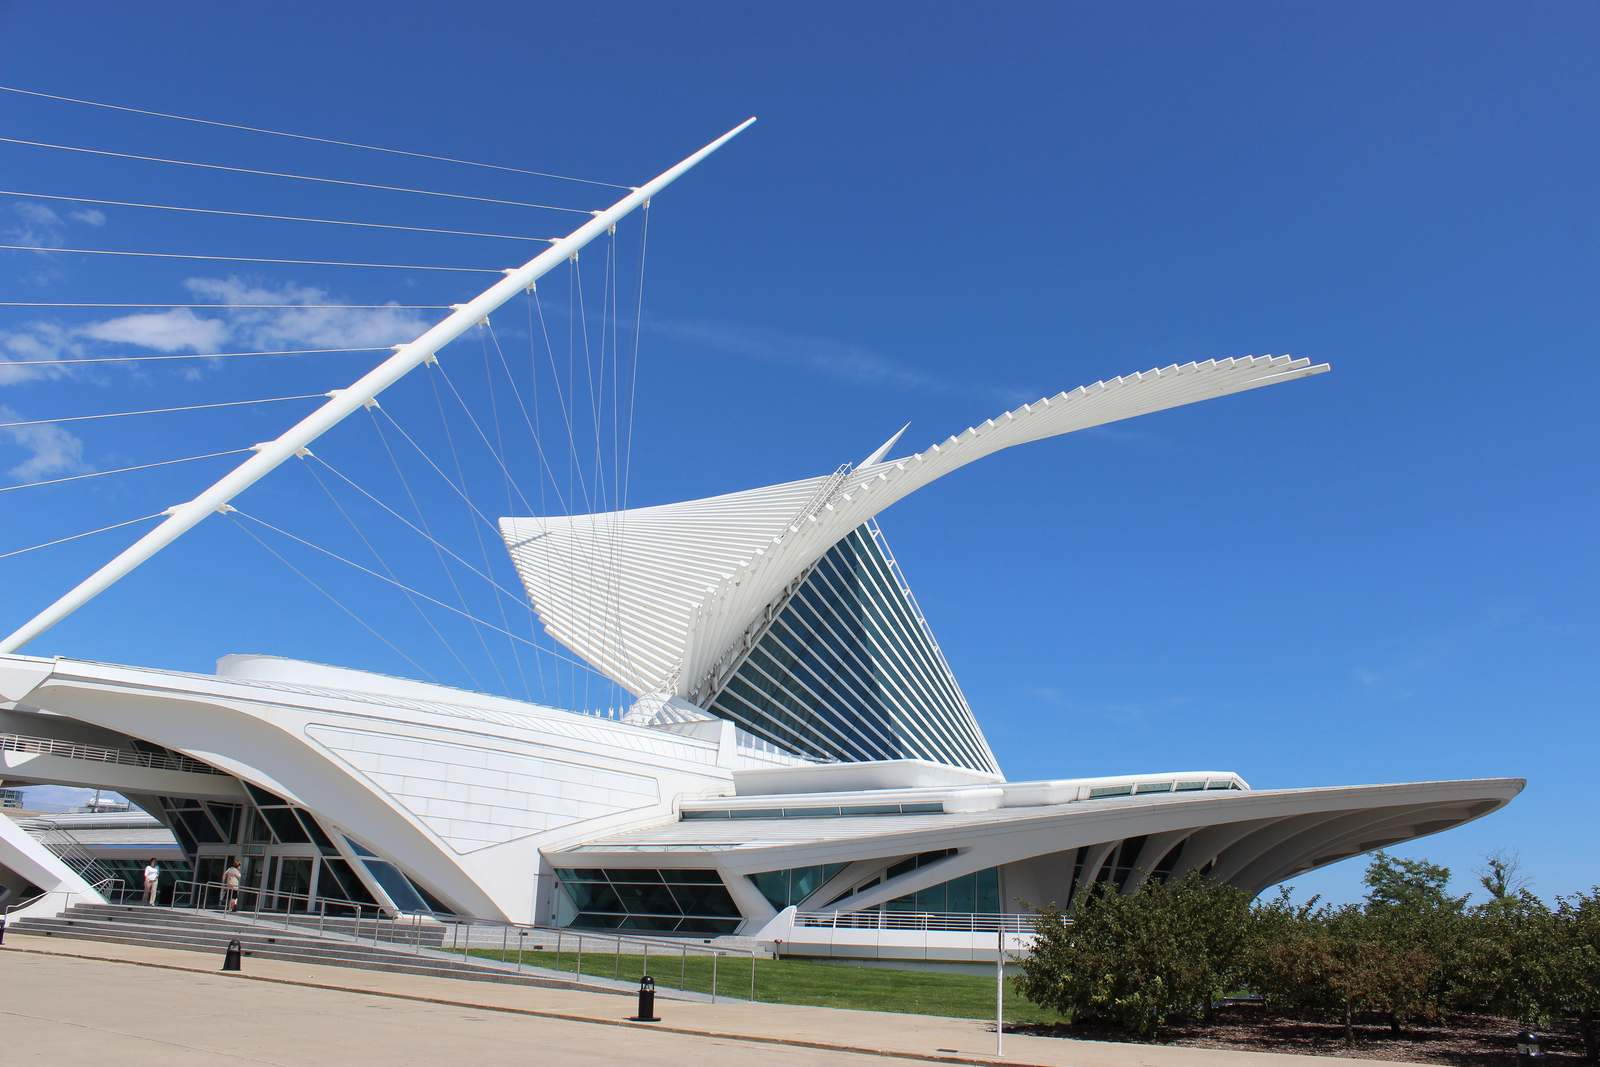 milwaukee art museum Modern Milwaukee Art Museum by Santiago Calatrava